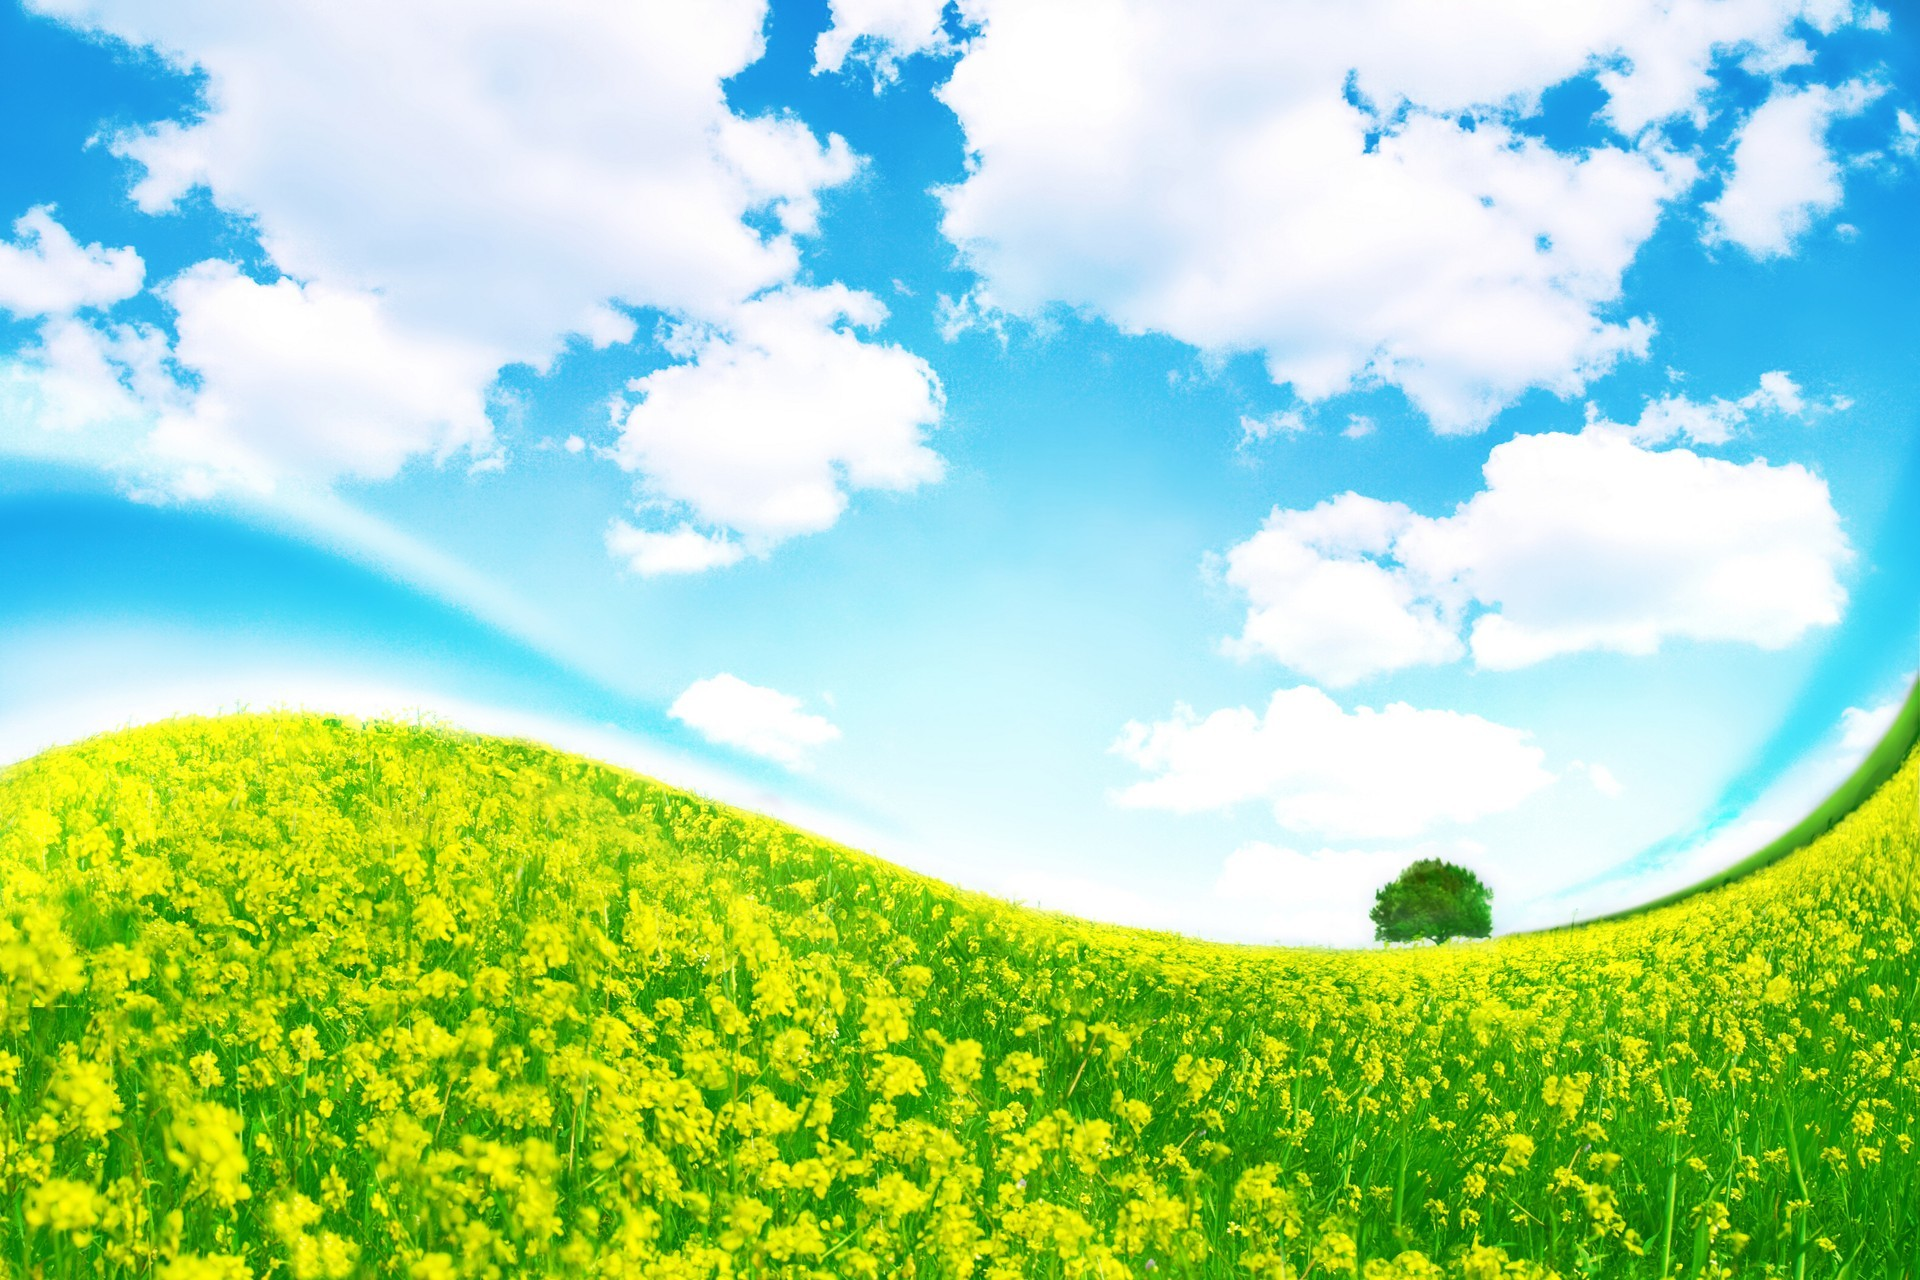 grass sky wallpaper - sf wallpaper